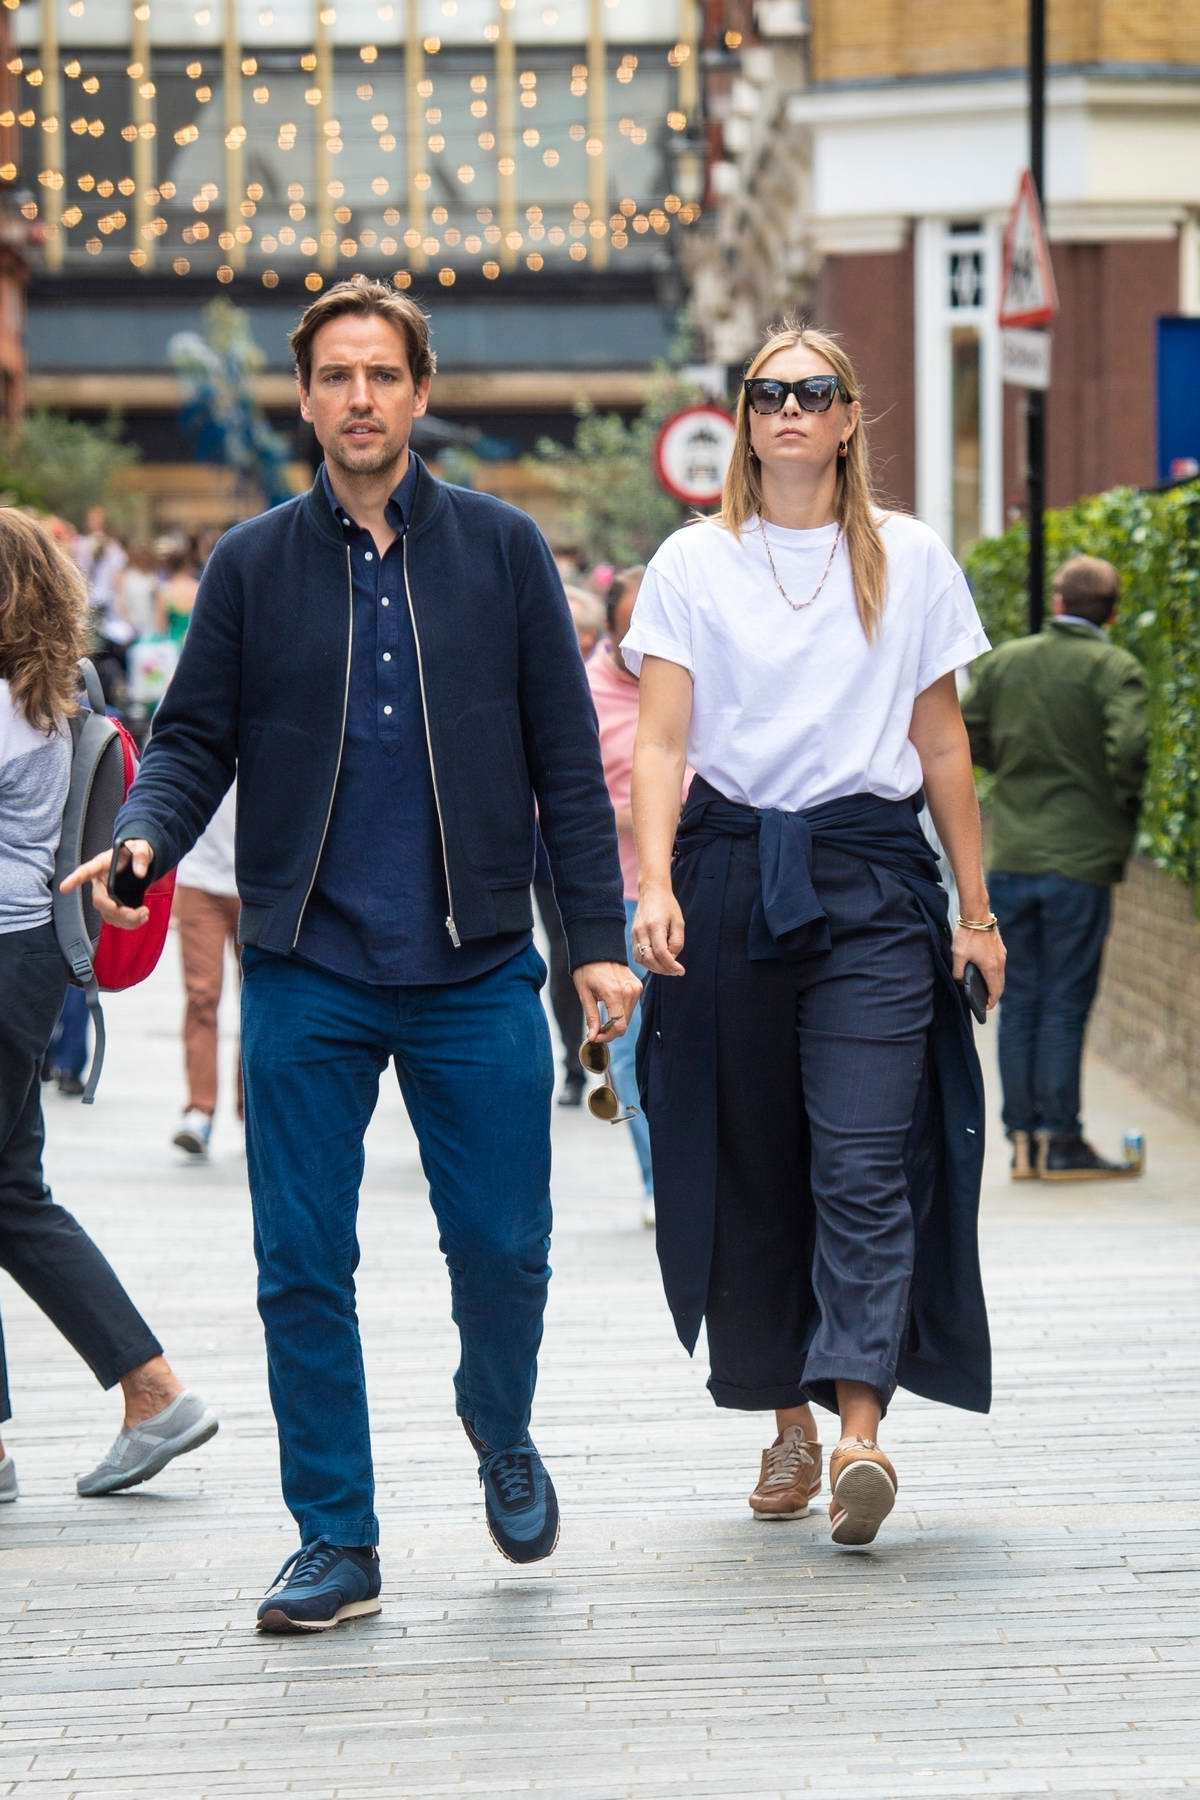 Maria Sharapova steps out for a stroll with boyfriend Alexander Gilkes in London, UK